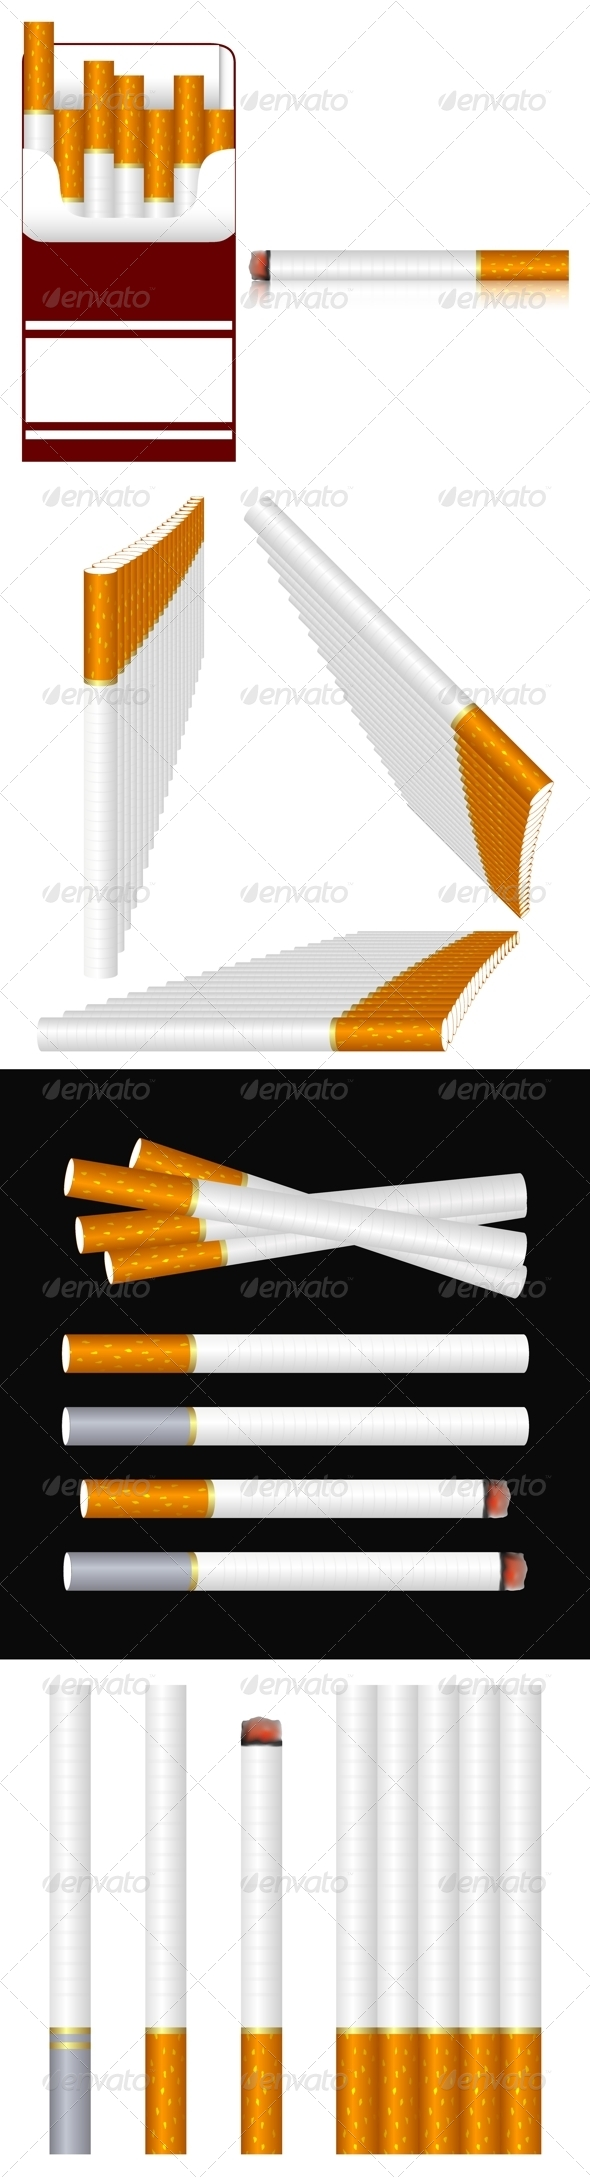 GraphicRiver Cigarettes 7551211